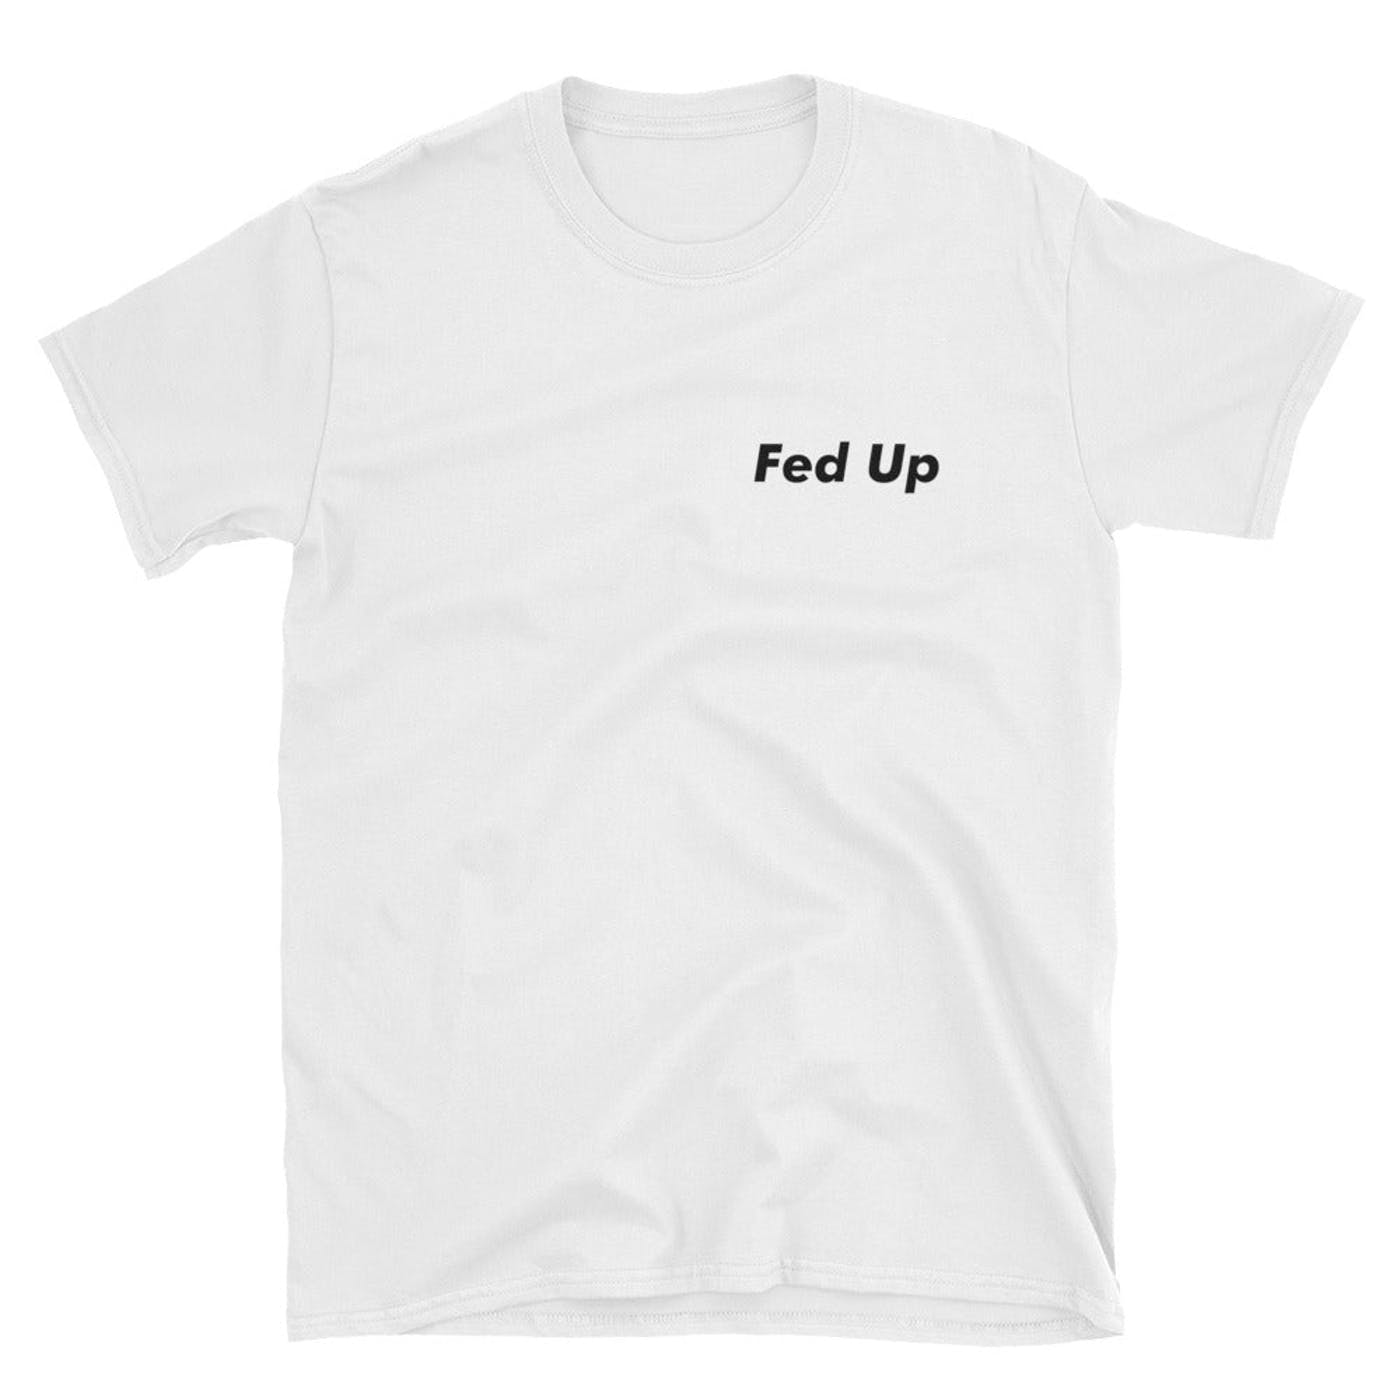 Fed Up on a White Tee